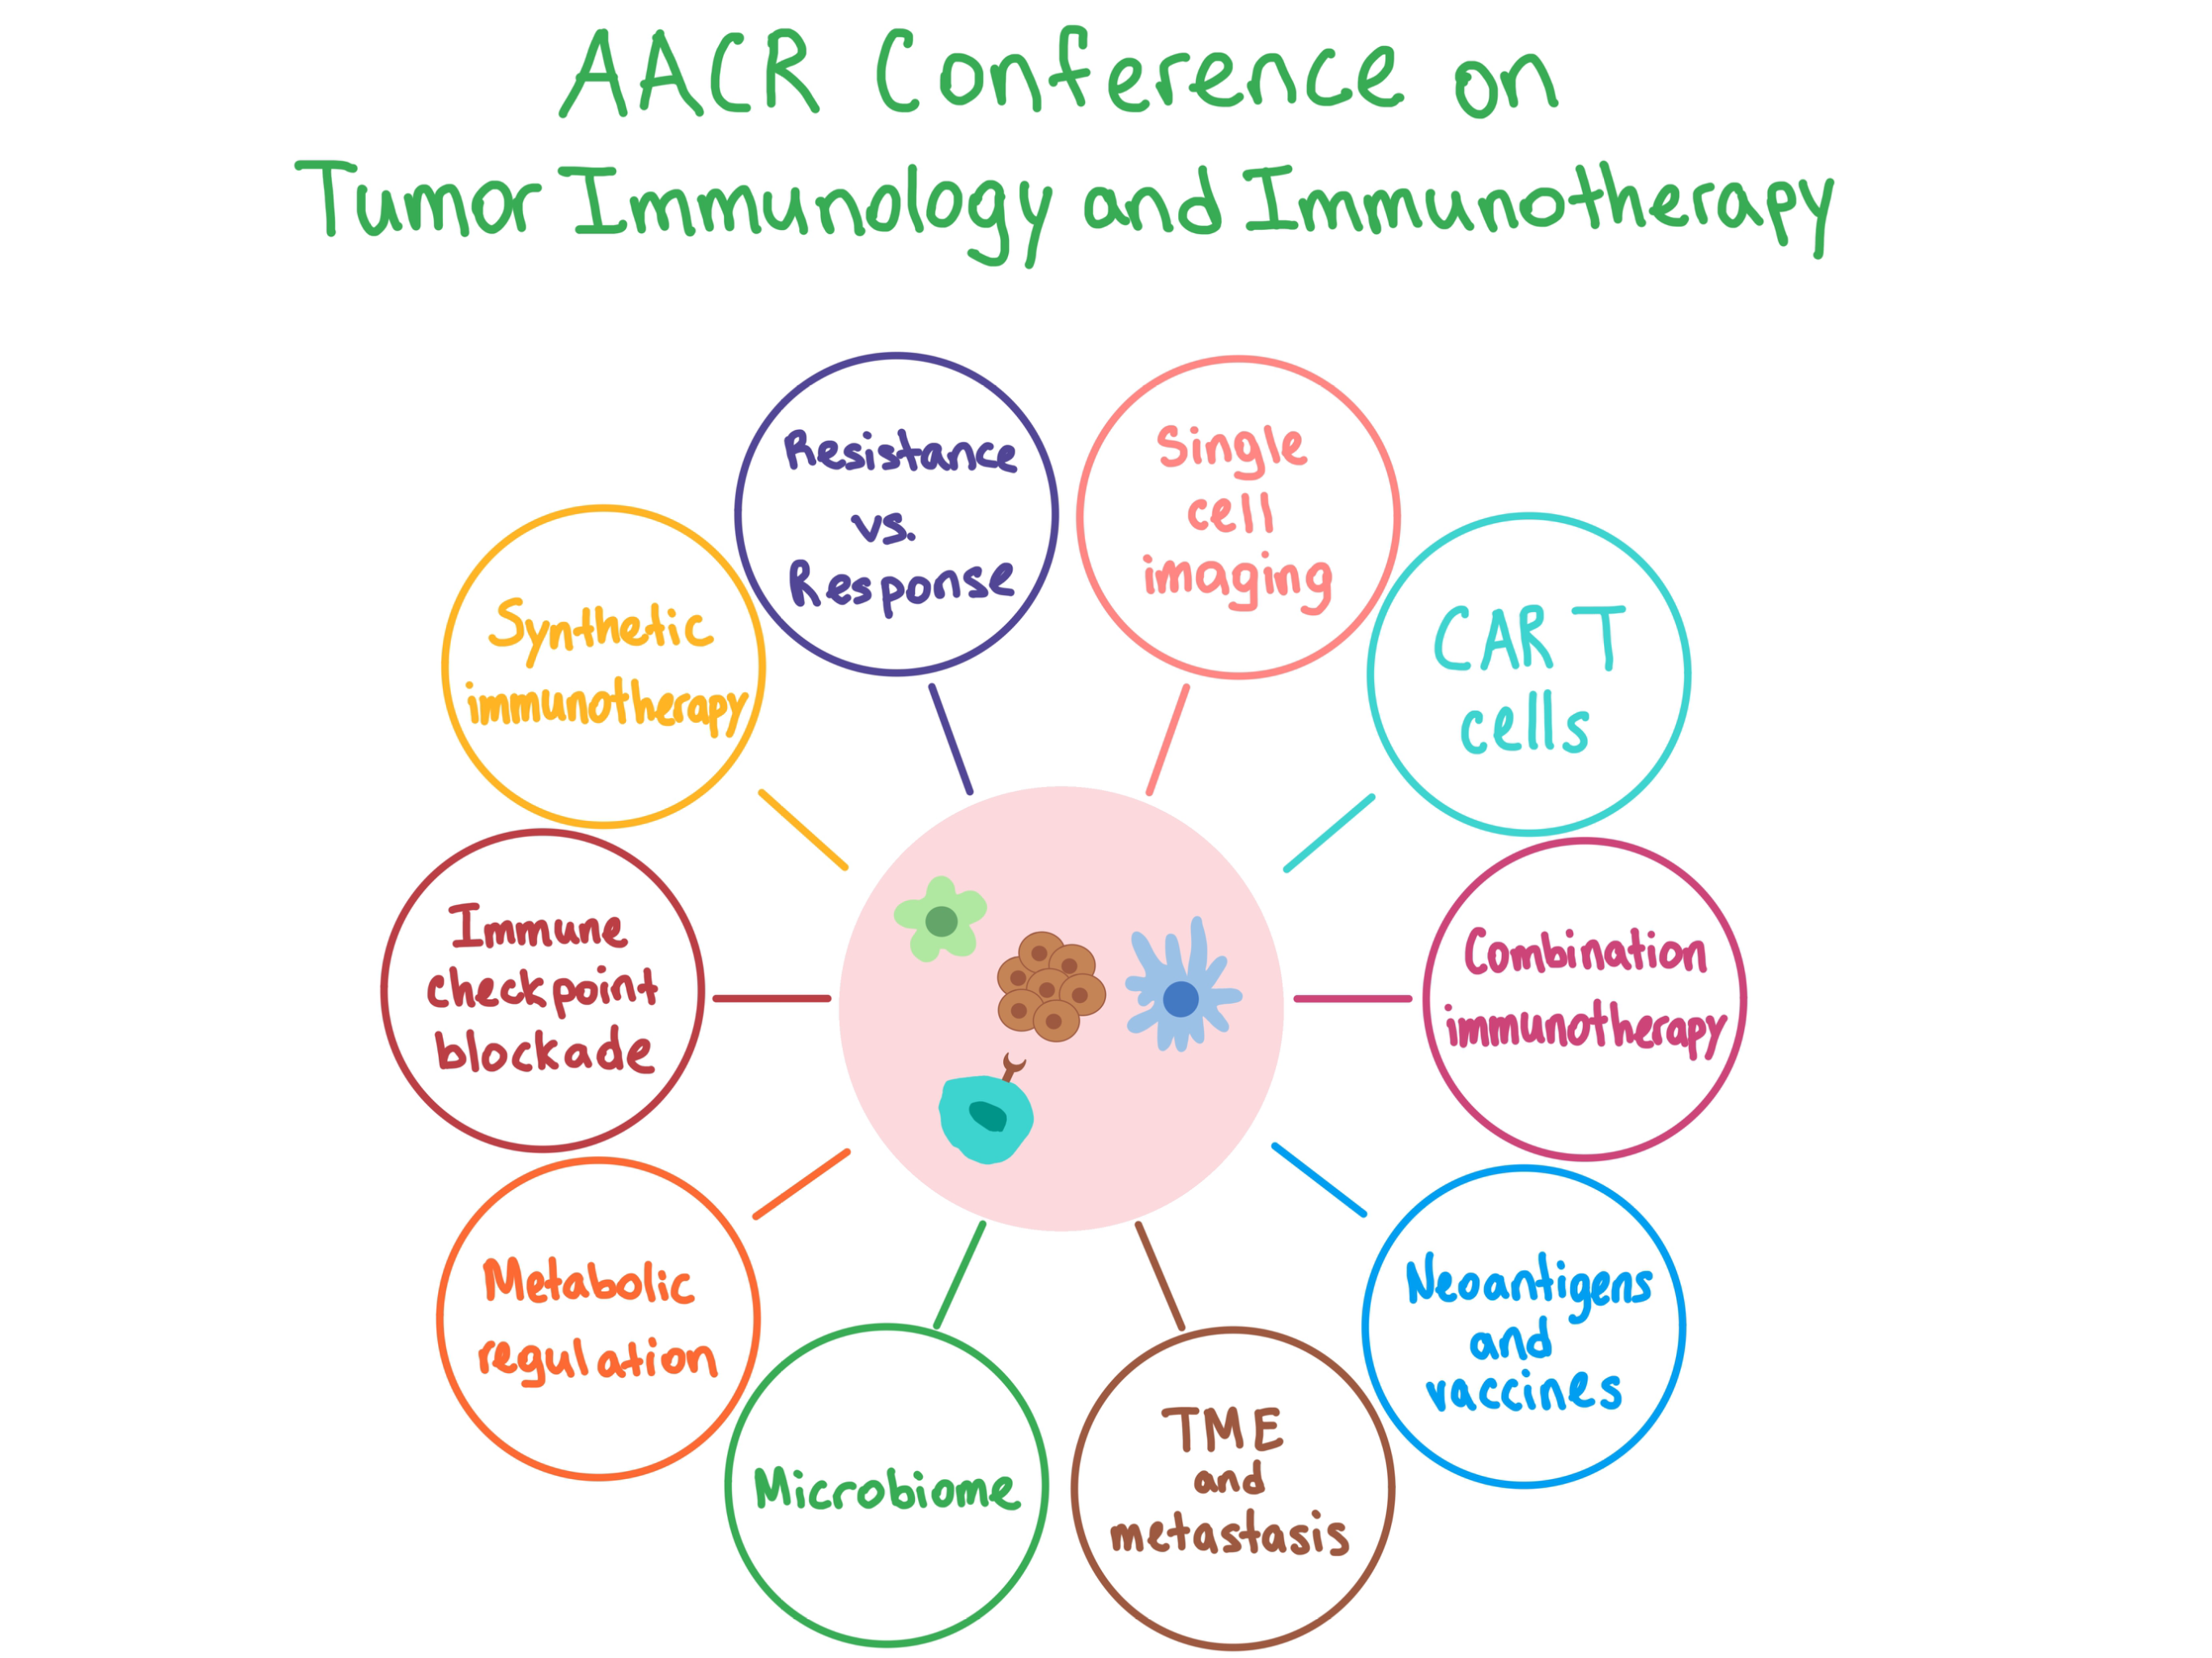 AACR Tumor Immunology and Immunotherapy Conference